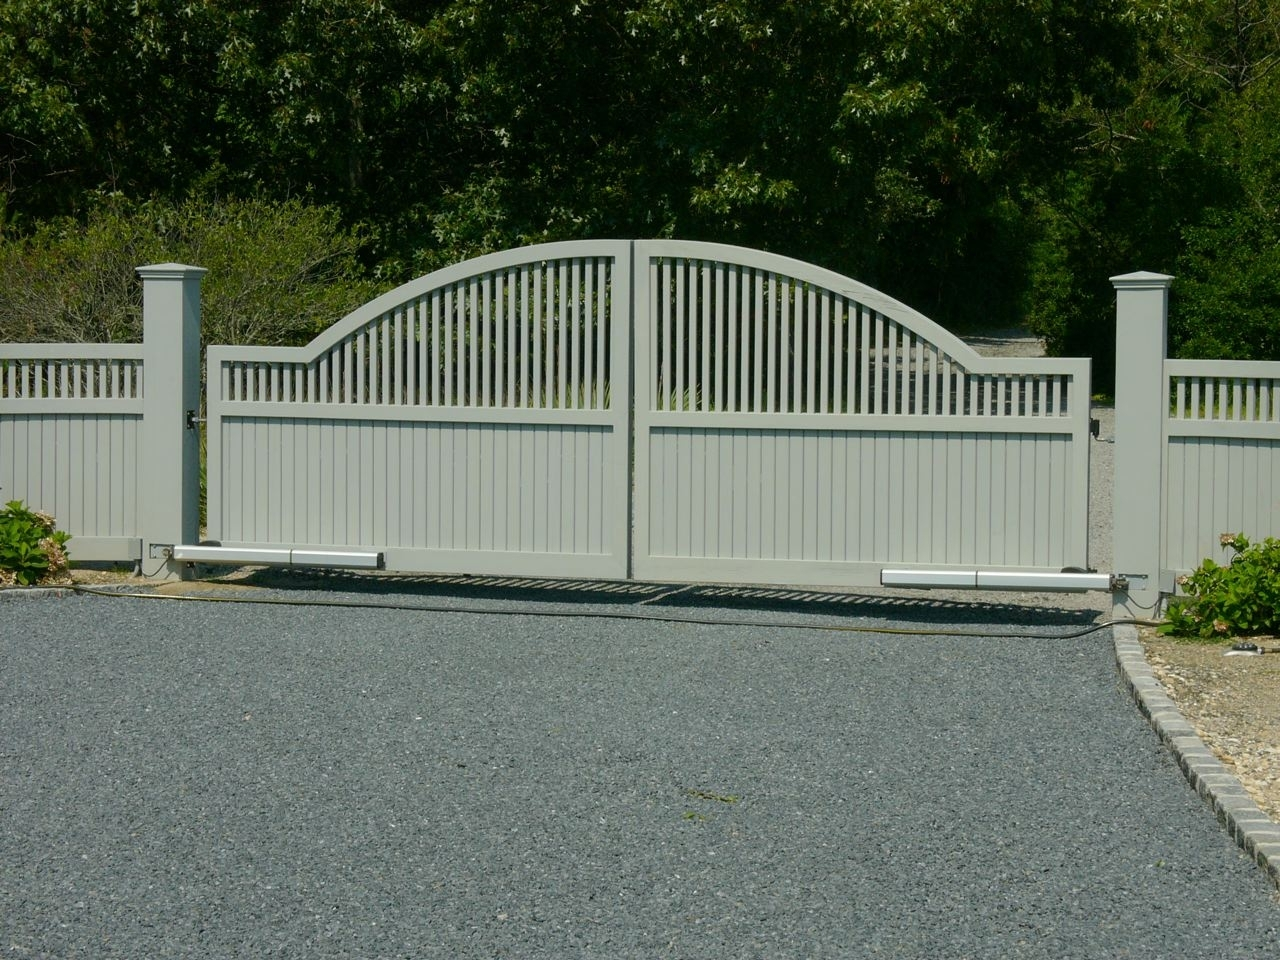 Estate Convex Cedar Driveway Gate with auto access controls